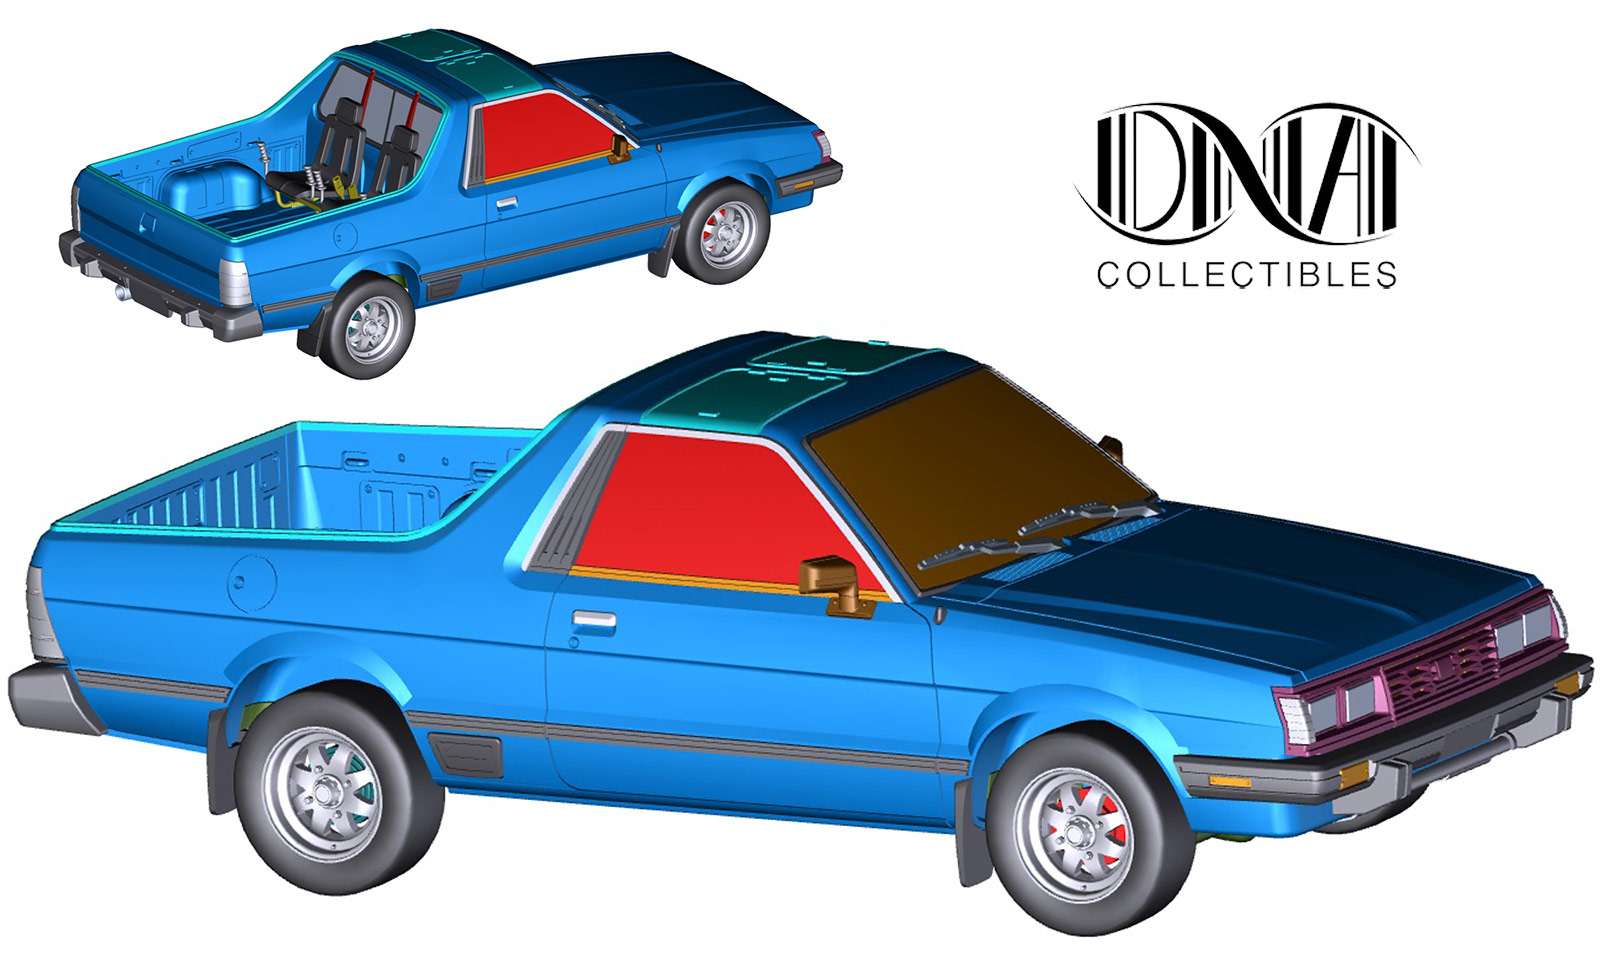 1/18 Subaru Brat DNA Collectibles